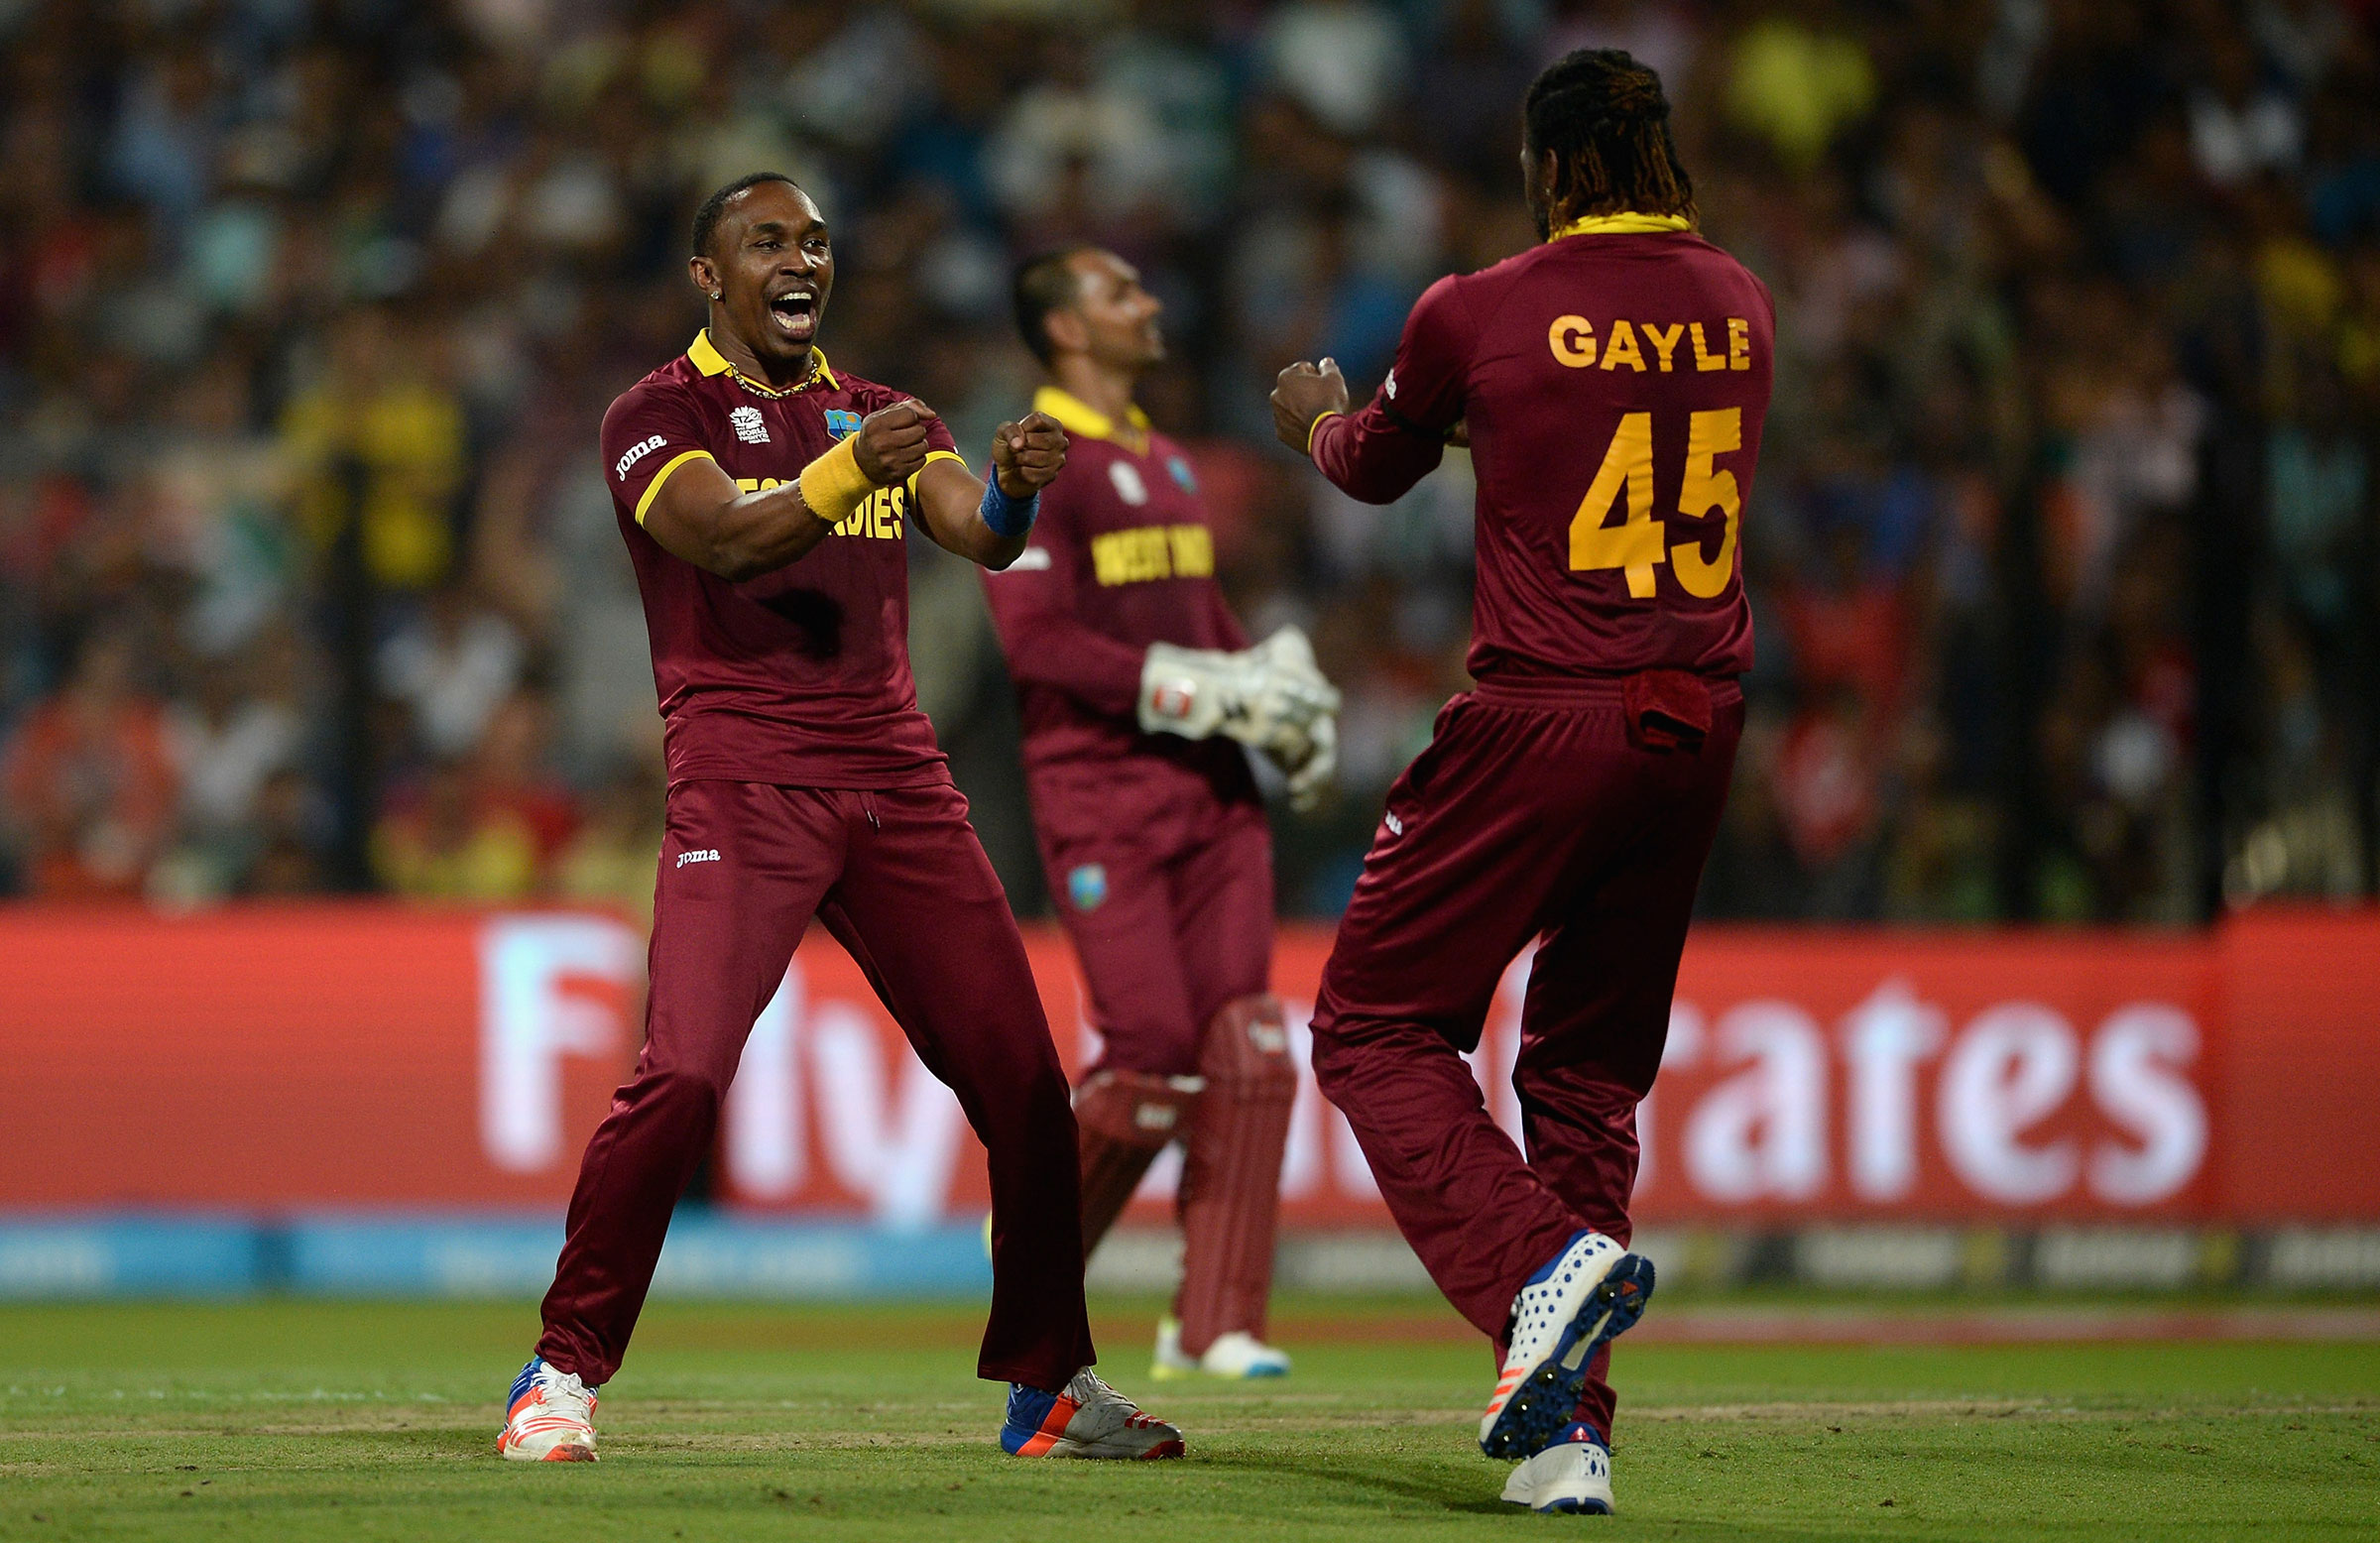 Gayle, Bravo and Pollard near returns as Windies agree selection 'amnesty'